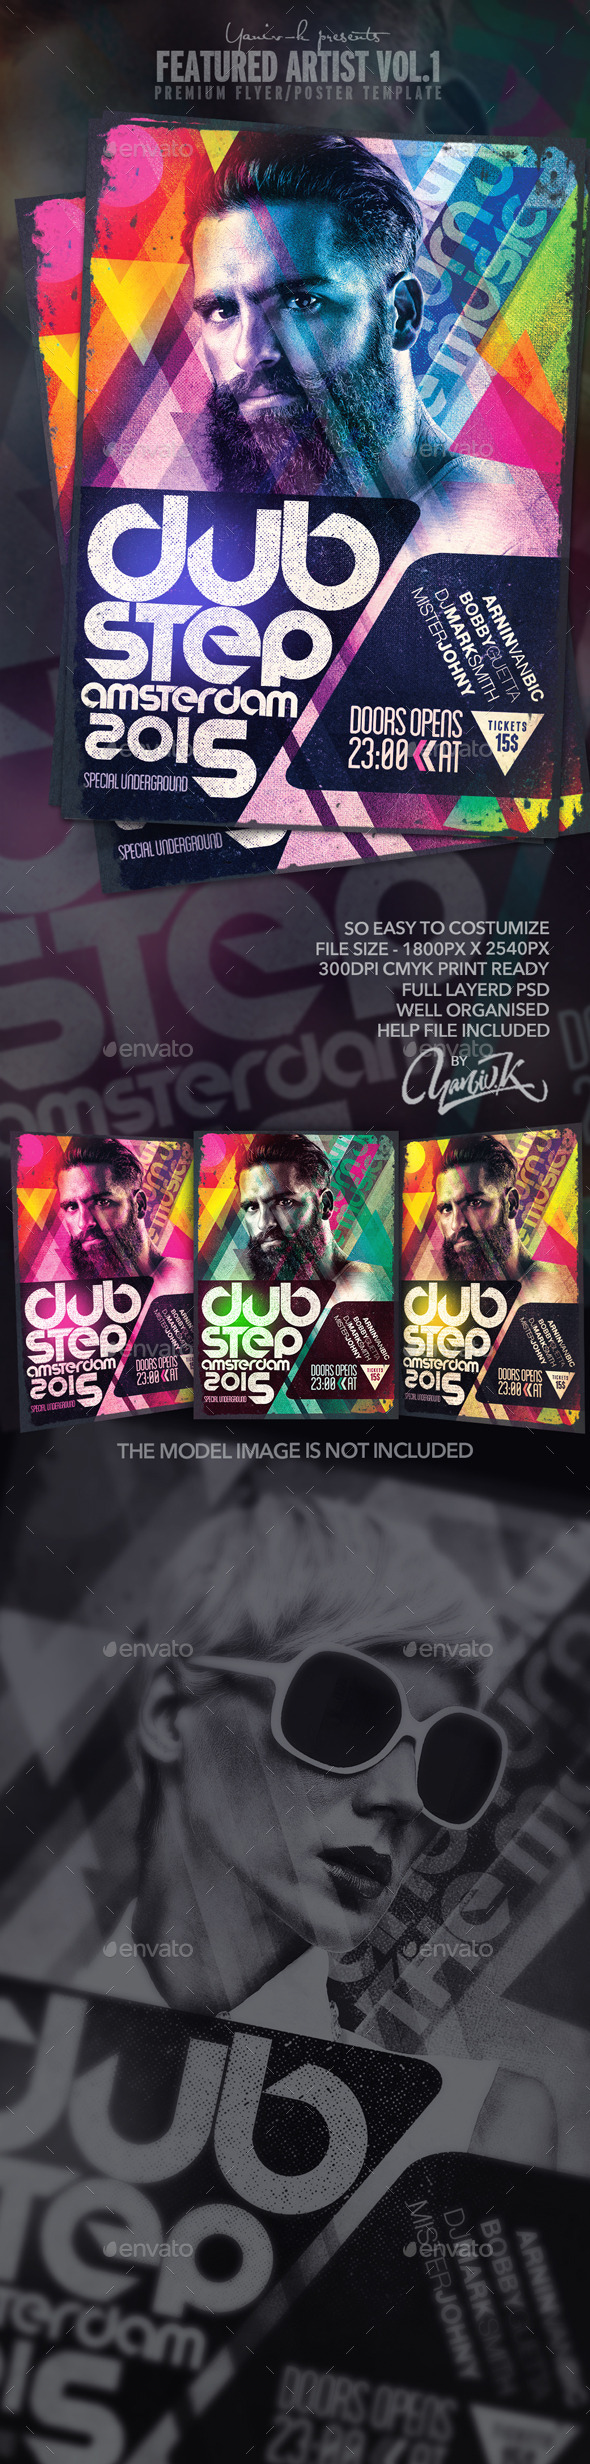 GraphicRiver Featured Artist Vol.1 Electro Dj 11873054